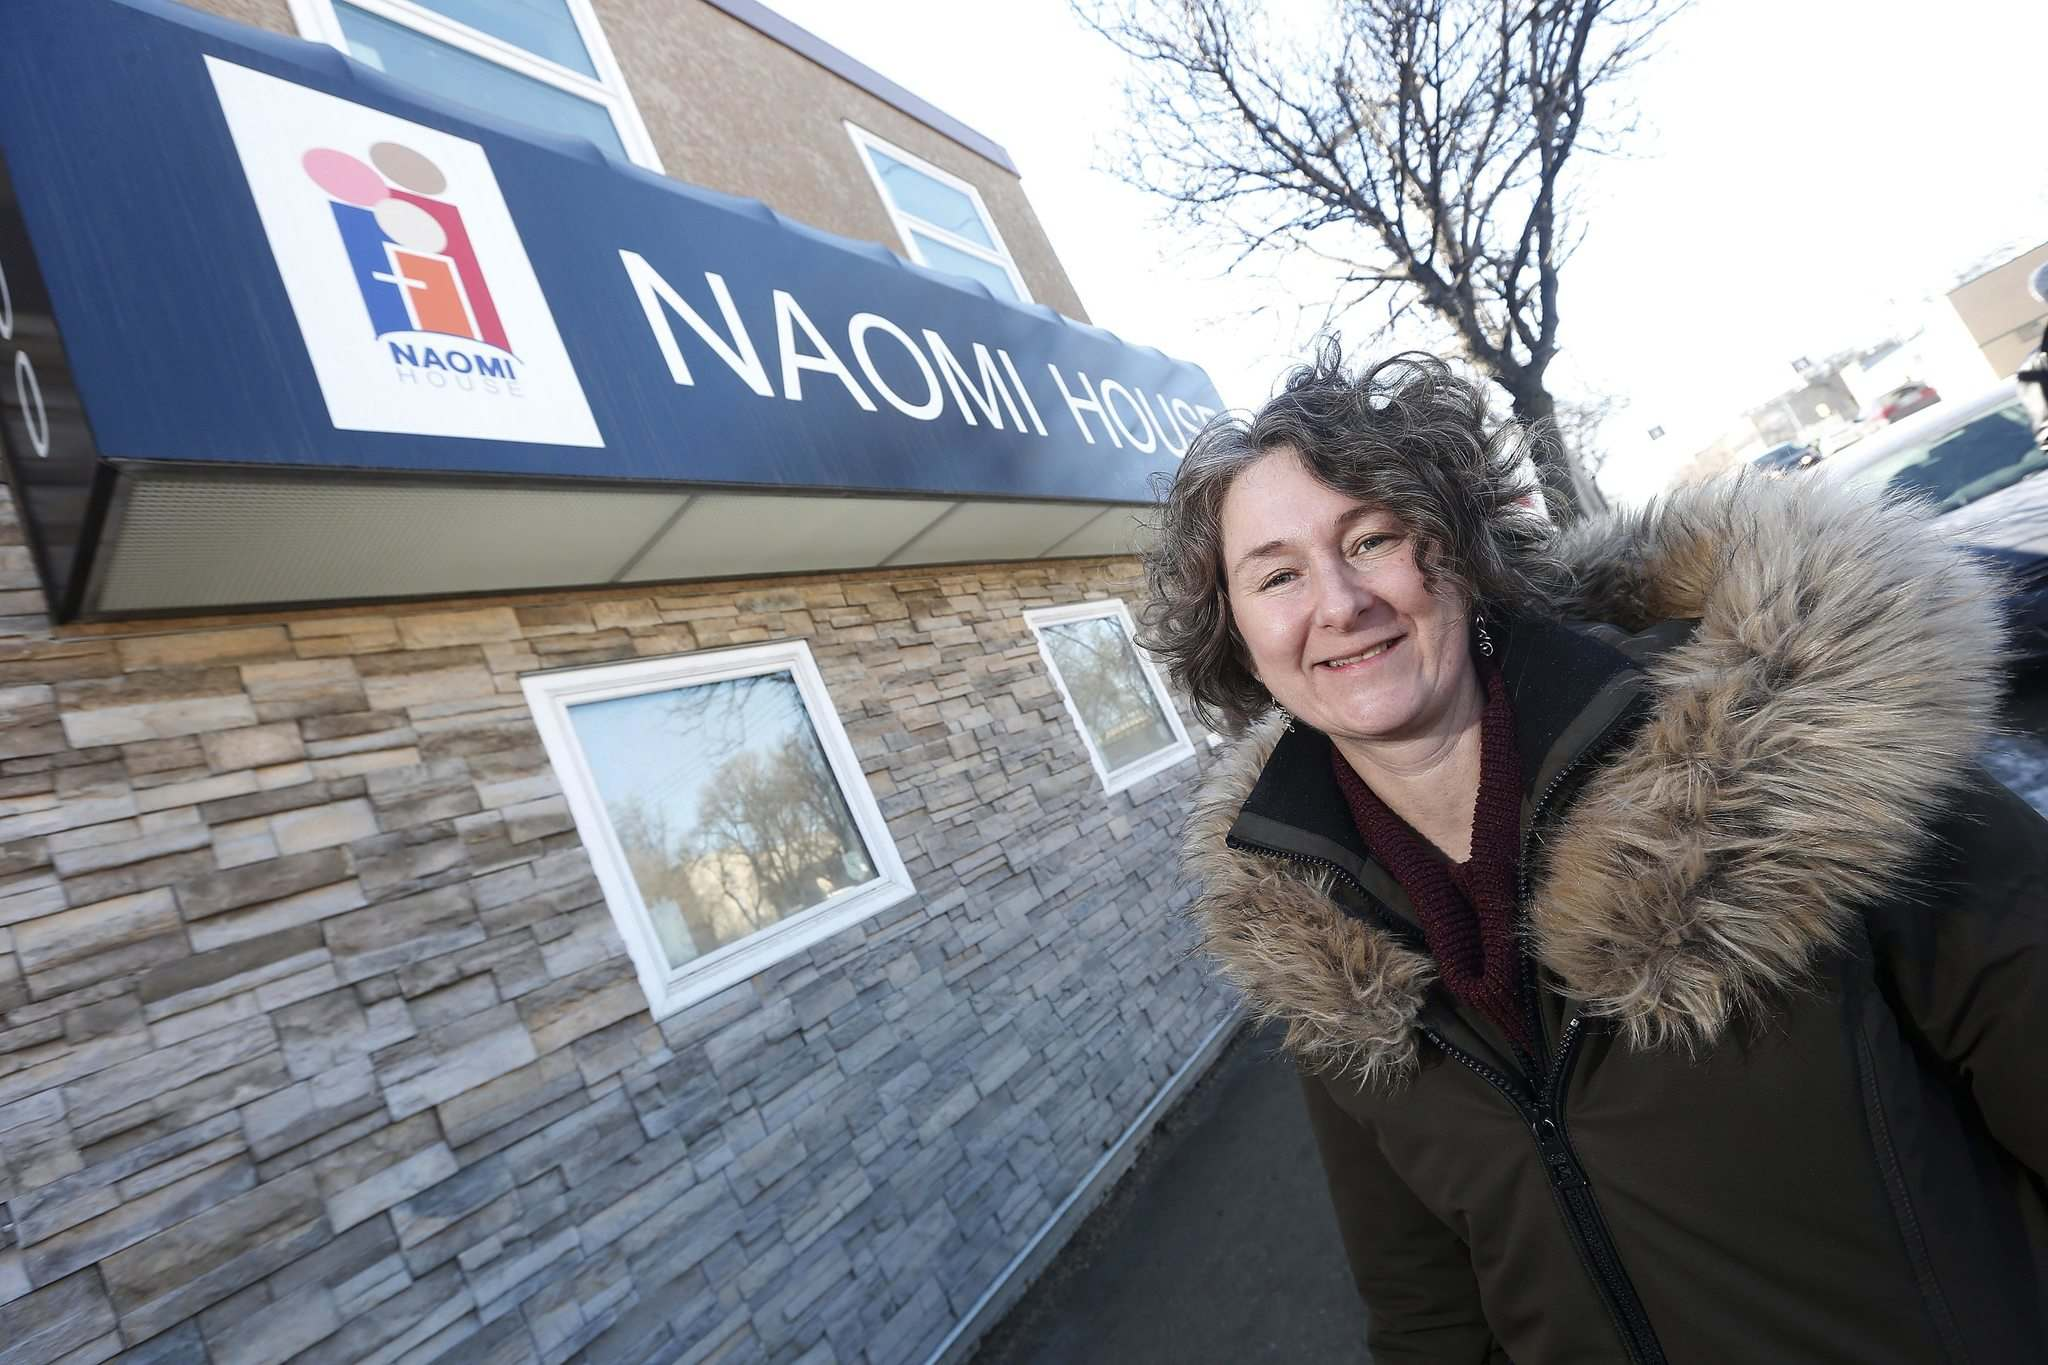 JOHN WOODS / WINNIPEG FREE PRESS</p><p>Naomi House interim director Sally Nelson says the initiative will help refugee claimants learn English, provide job skills and help them get to know their new home.</p>